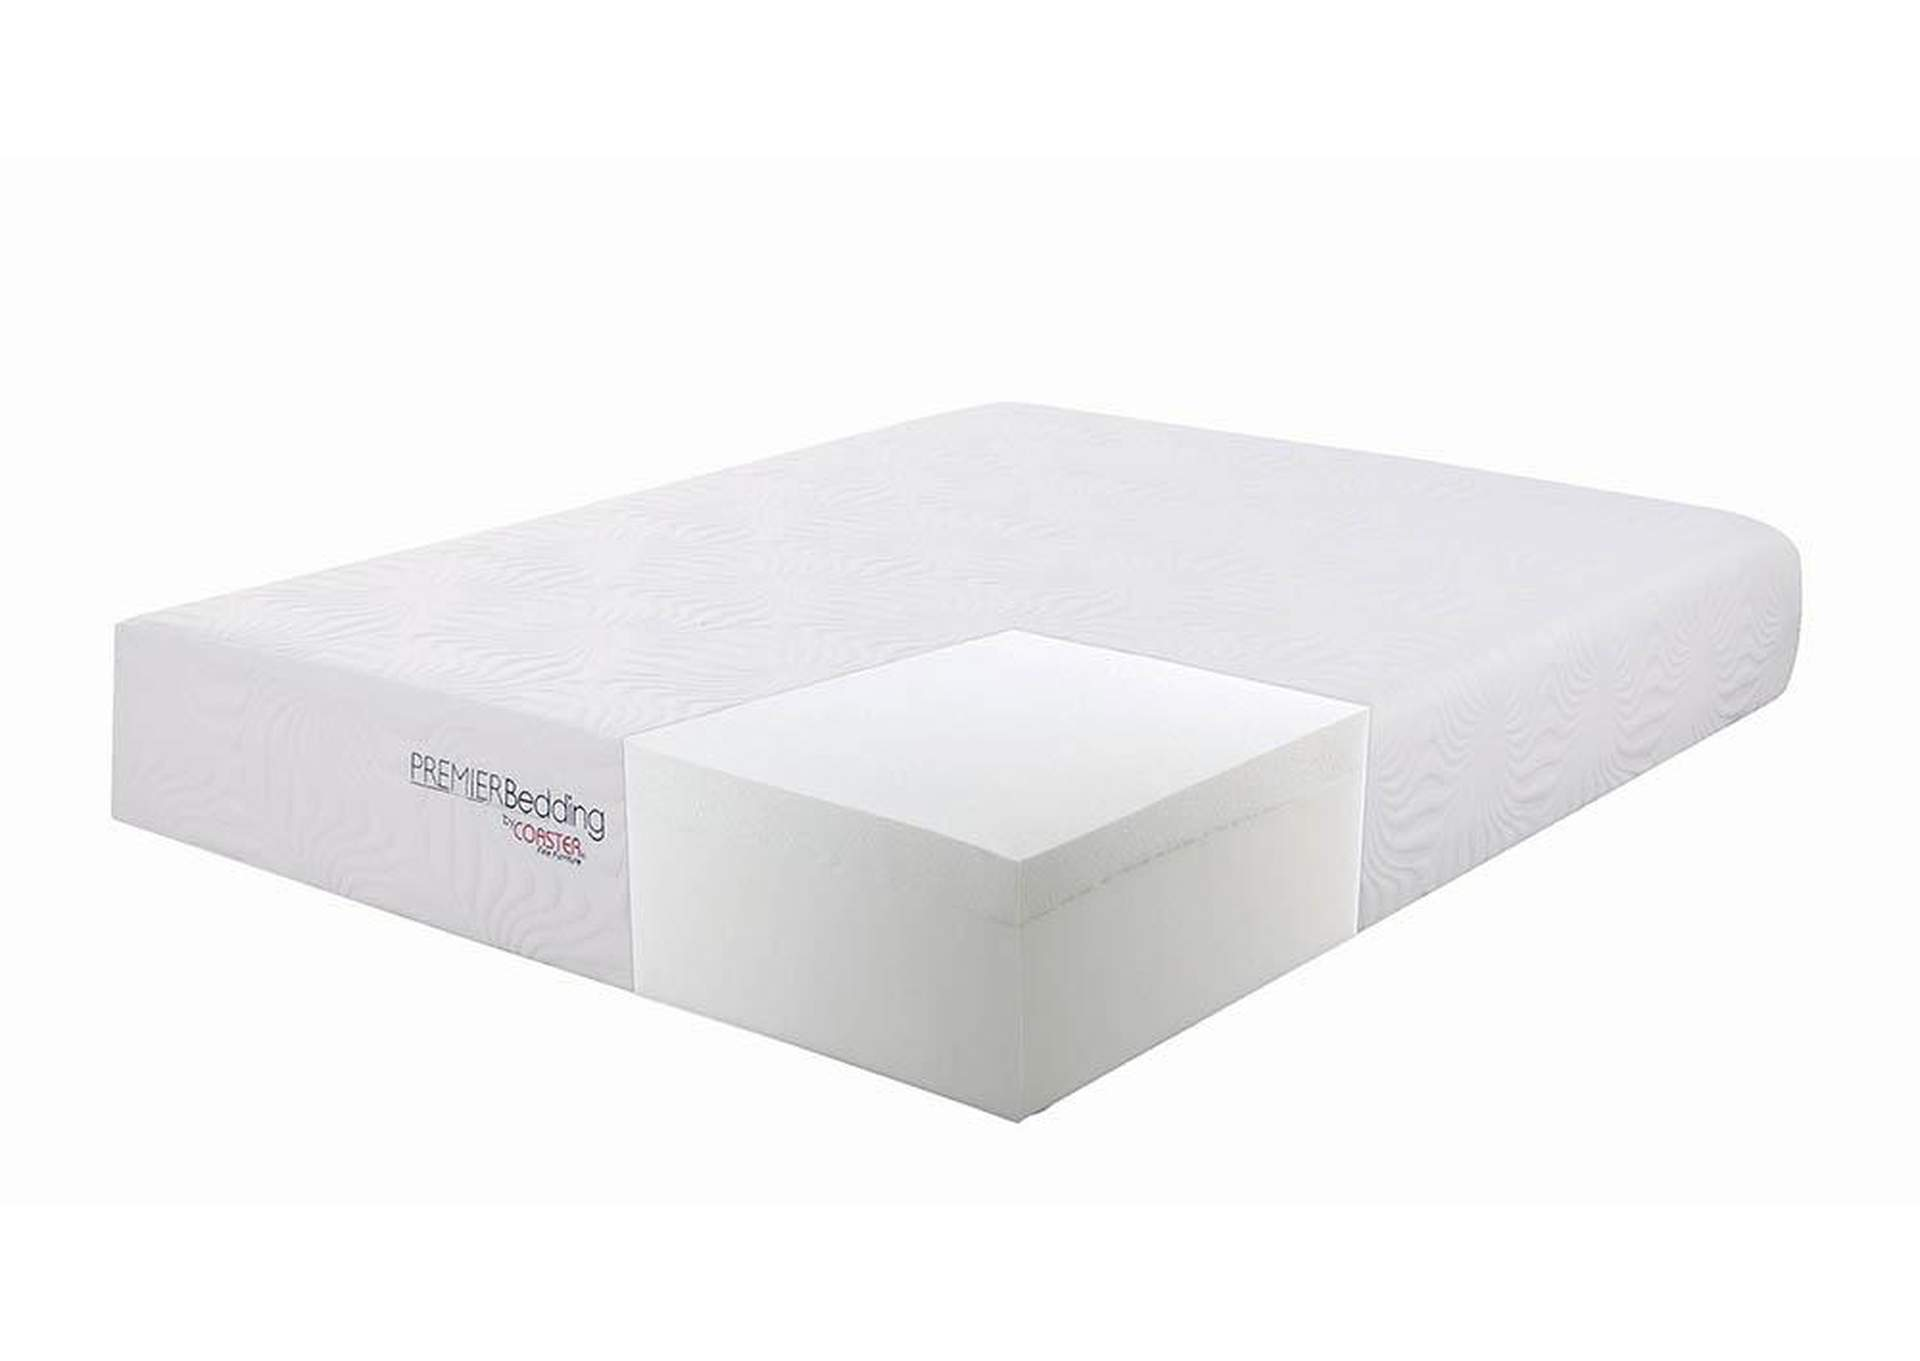 Ian 12 Inch Queen Memory Foam Mattress,Coaster Furniture